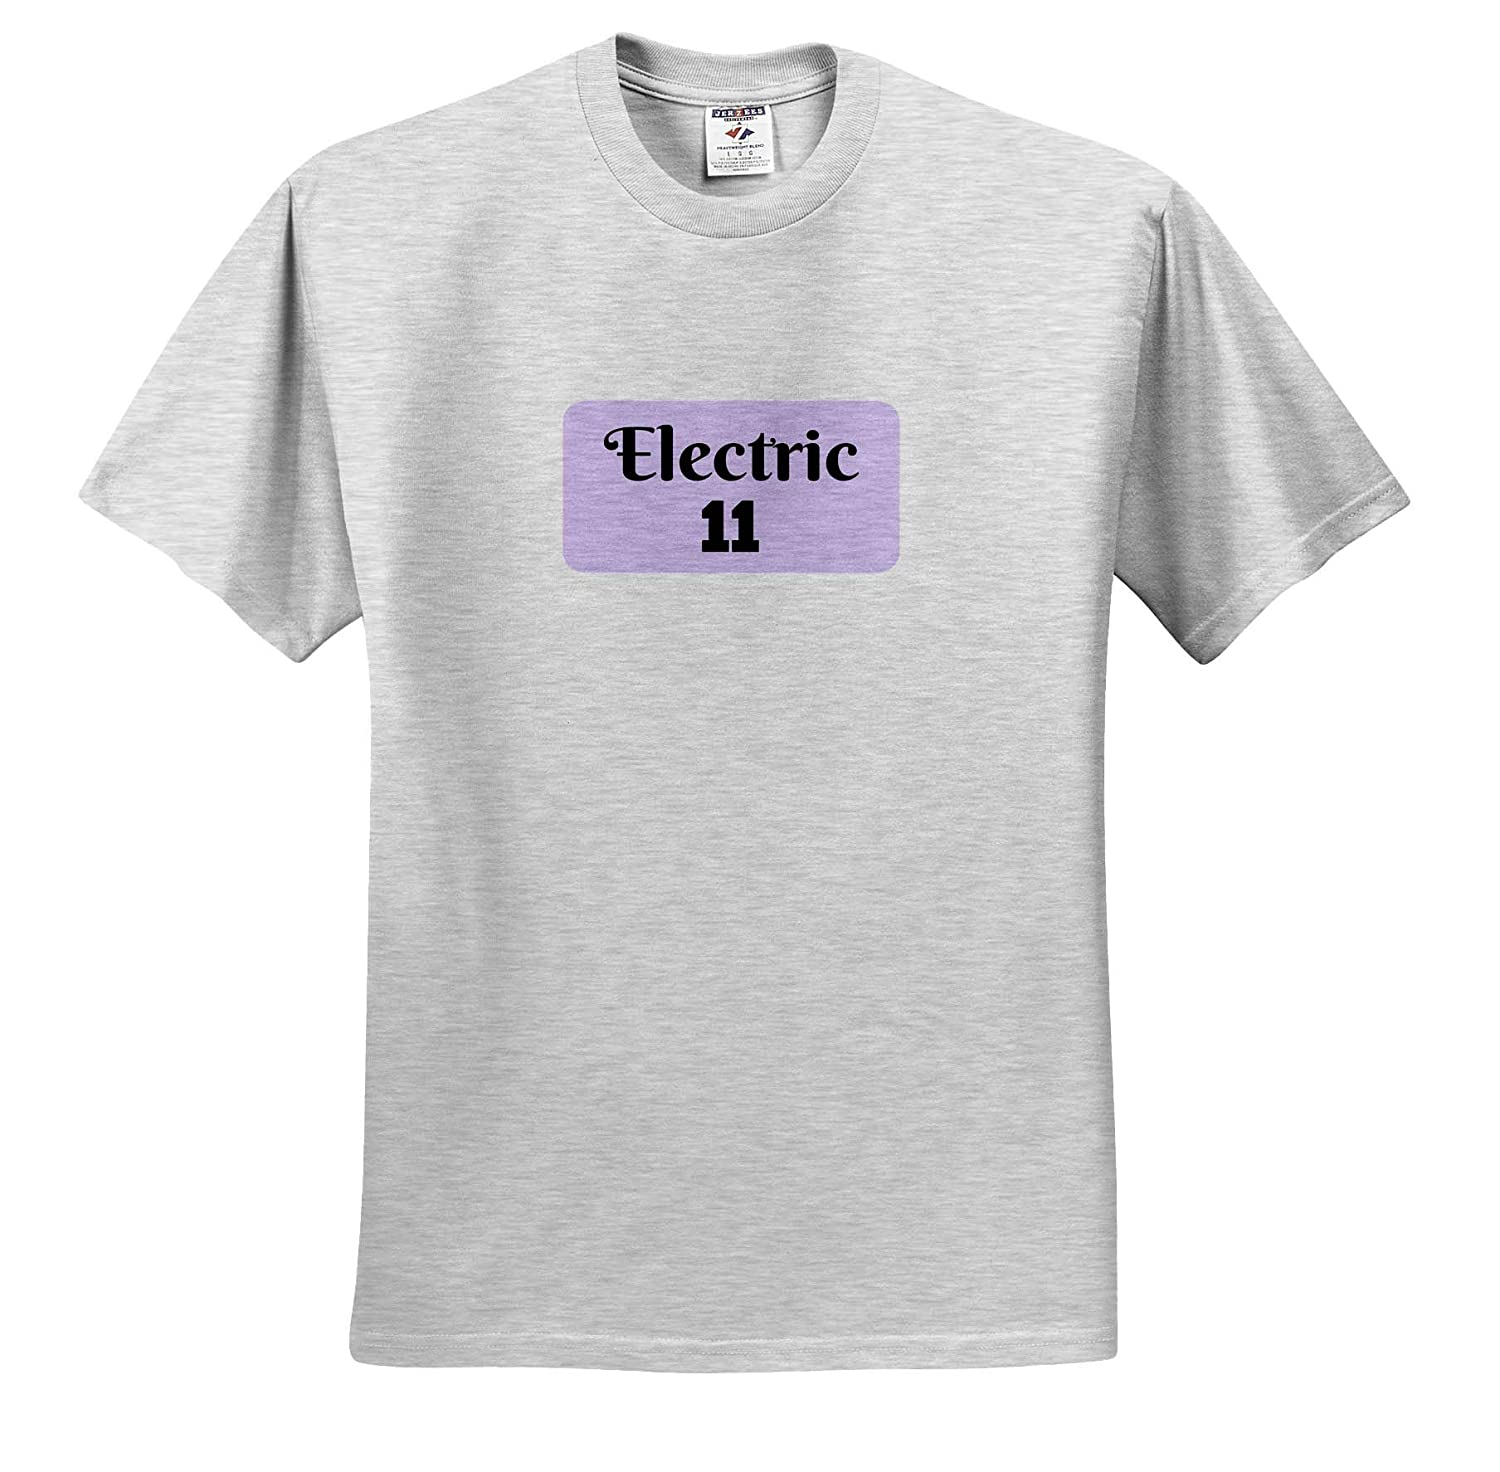 Adult T-Shirt XL 3dRose Carrie Merchant Image of Electric Eleven ts/_309673